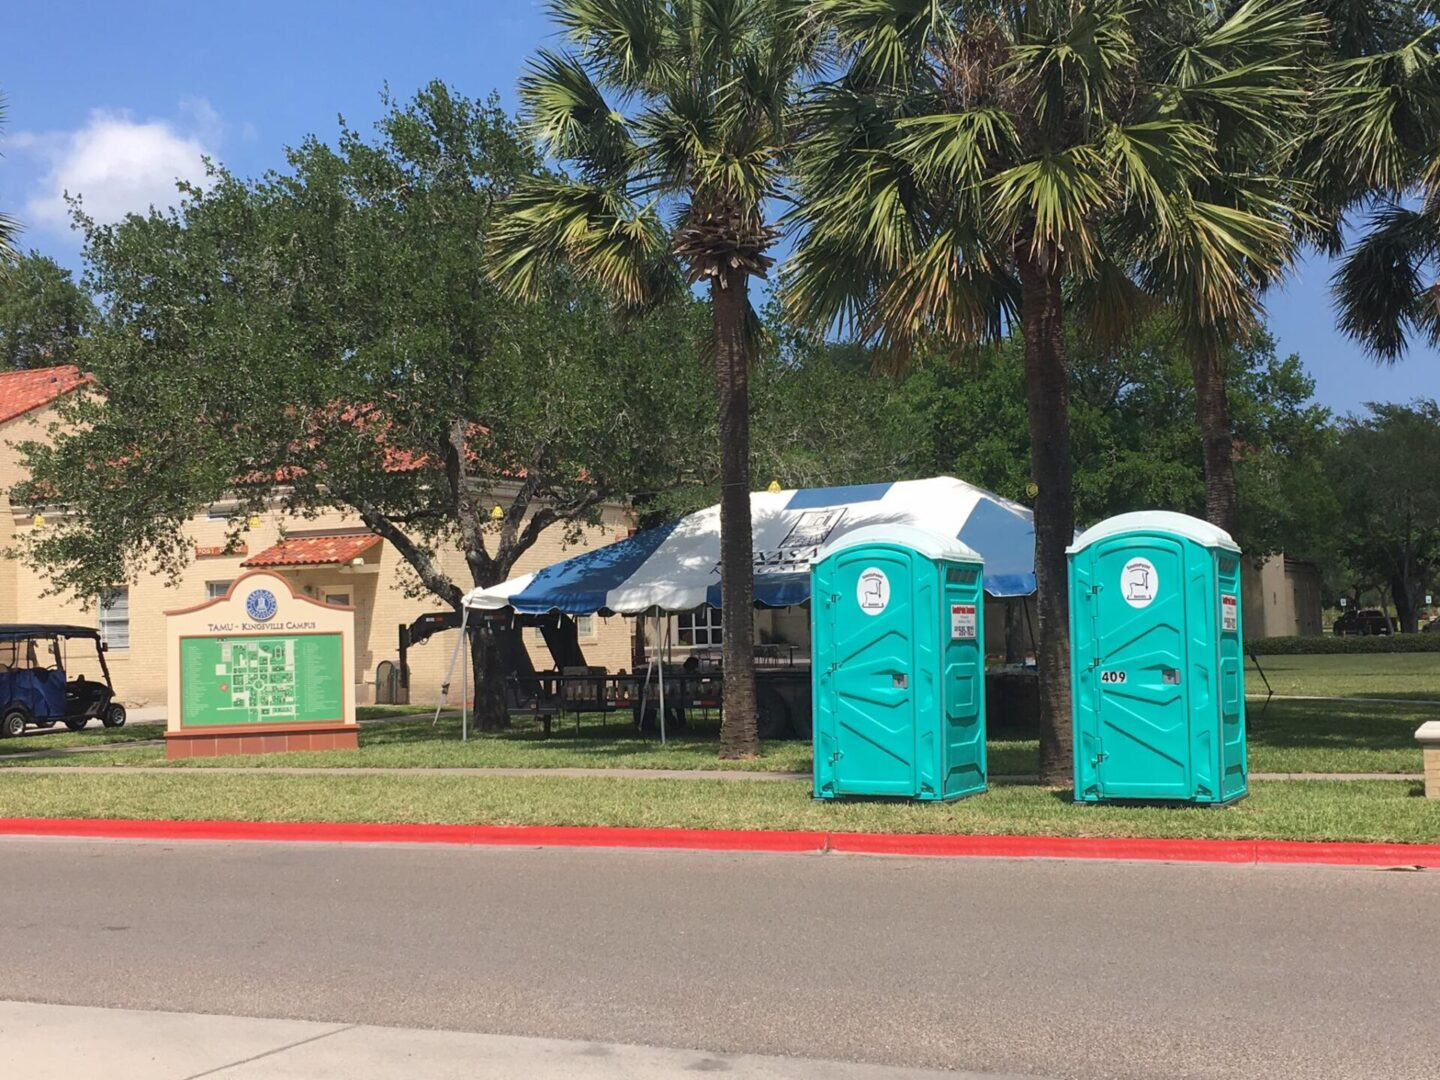 Two portable restrooms near Texas A&M University – Kingsville campus